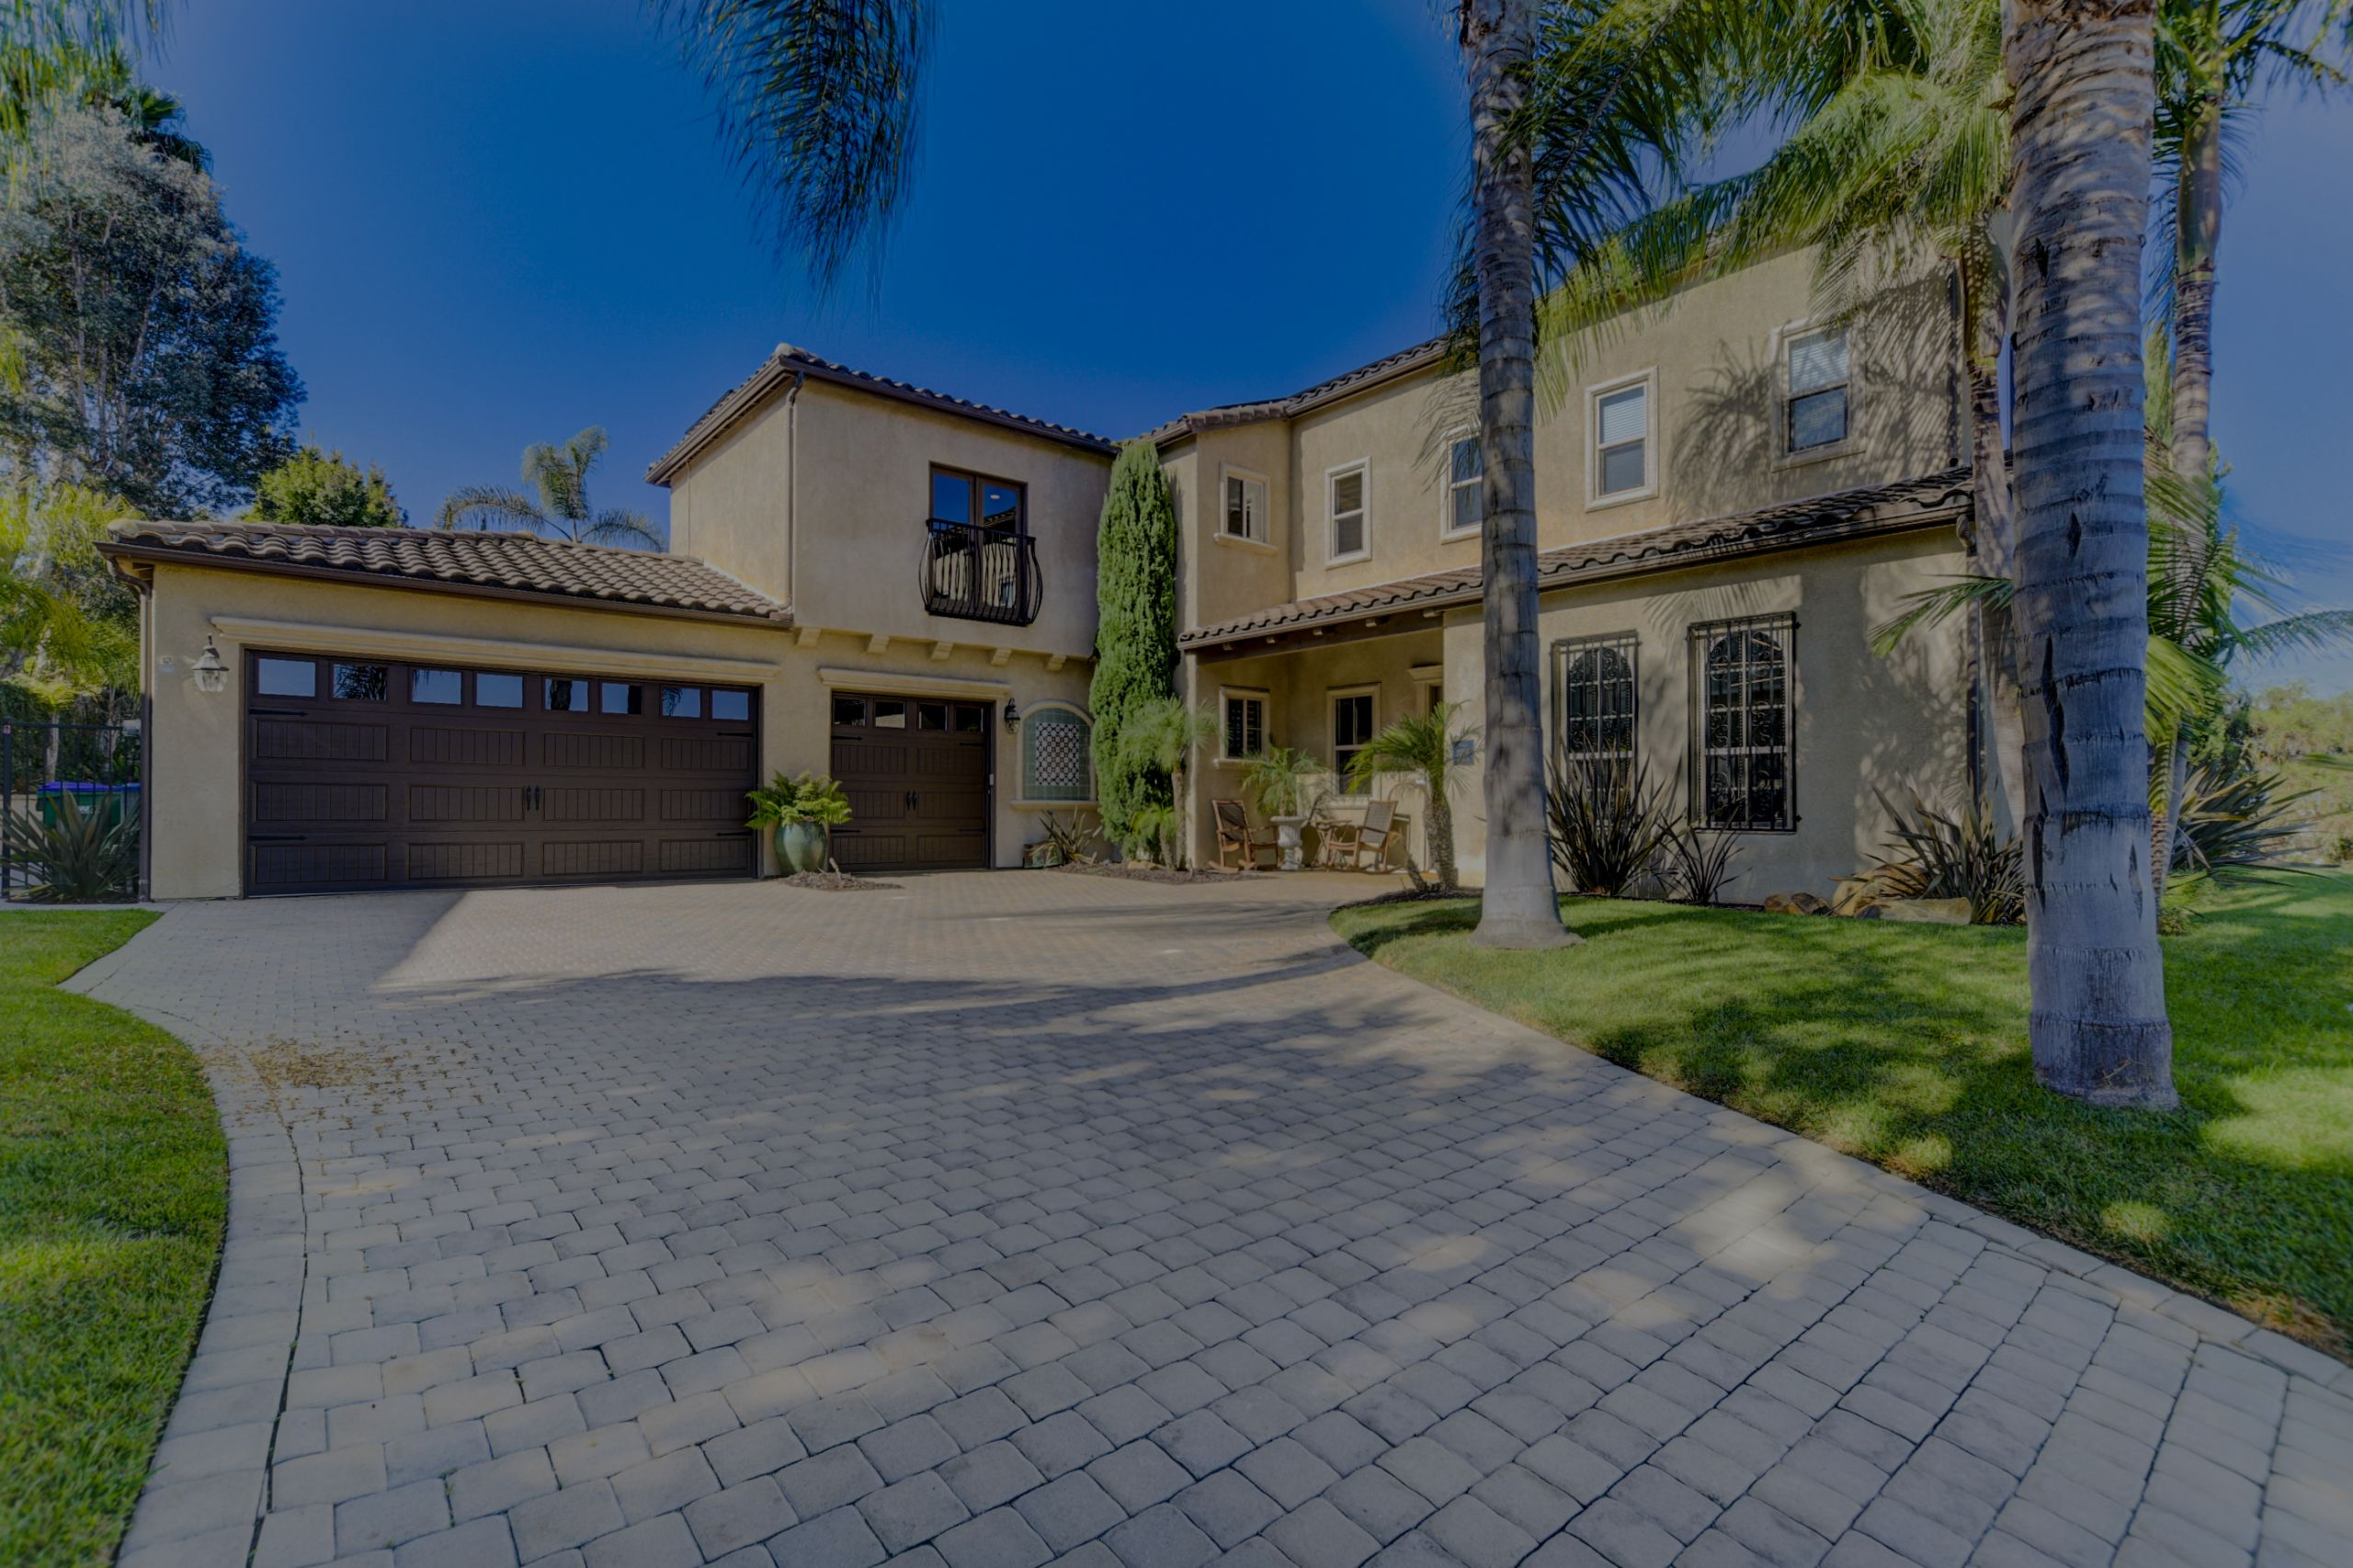 Off-Market Exclusive in Carlsbad